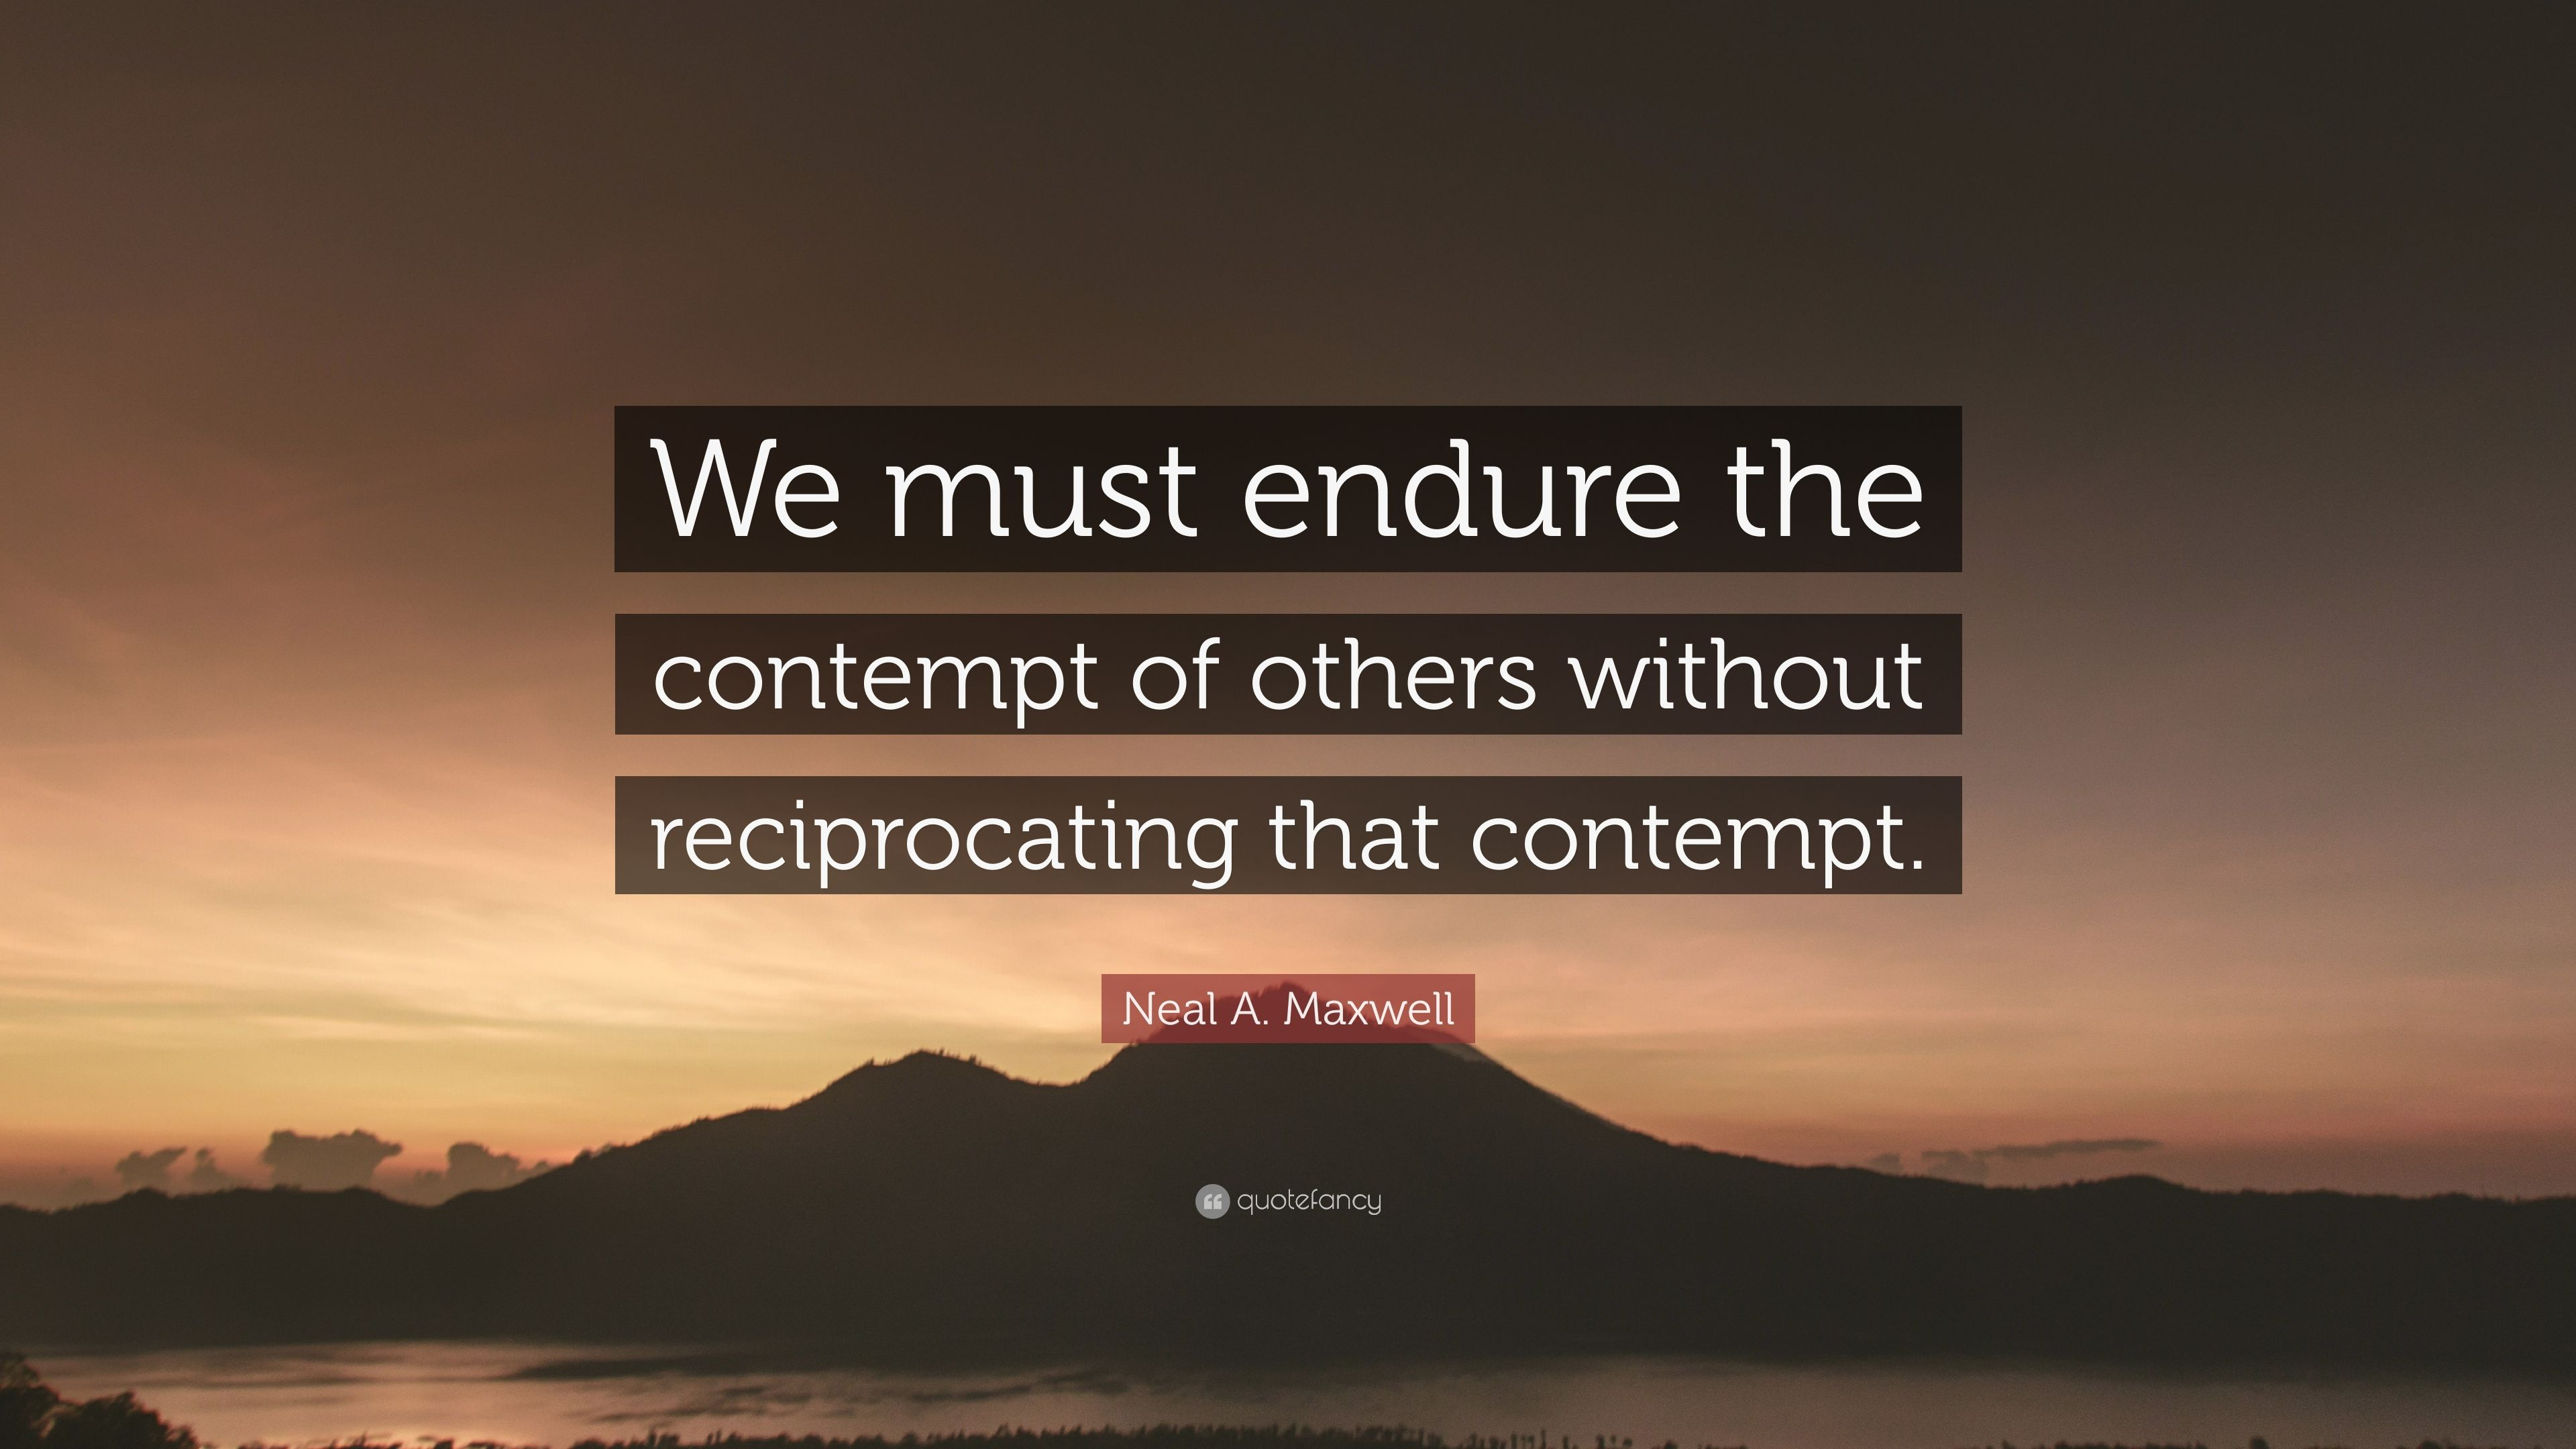 Image result for we must endure the contempt of others without reciprocating images